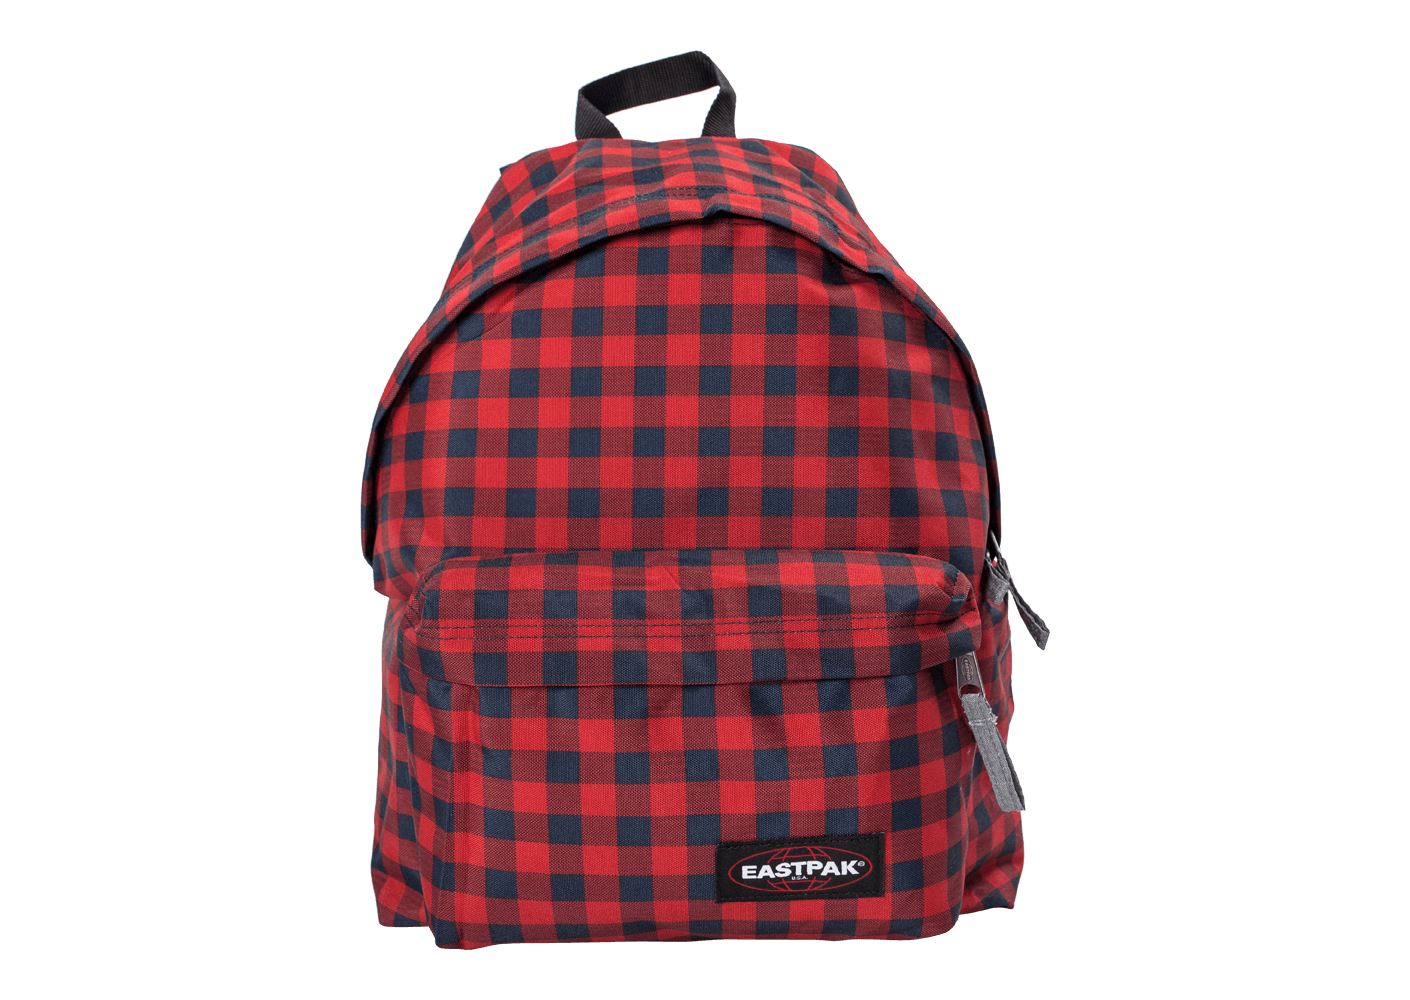 eastpak sac dos padded pak 39 r simply red sacs sacoches chausport. Black Bedroom Furniture Sets. Home Design Ideas